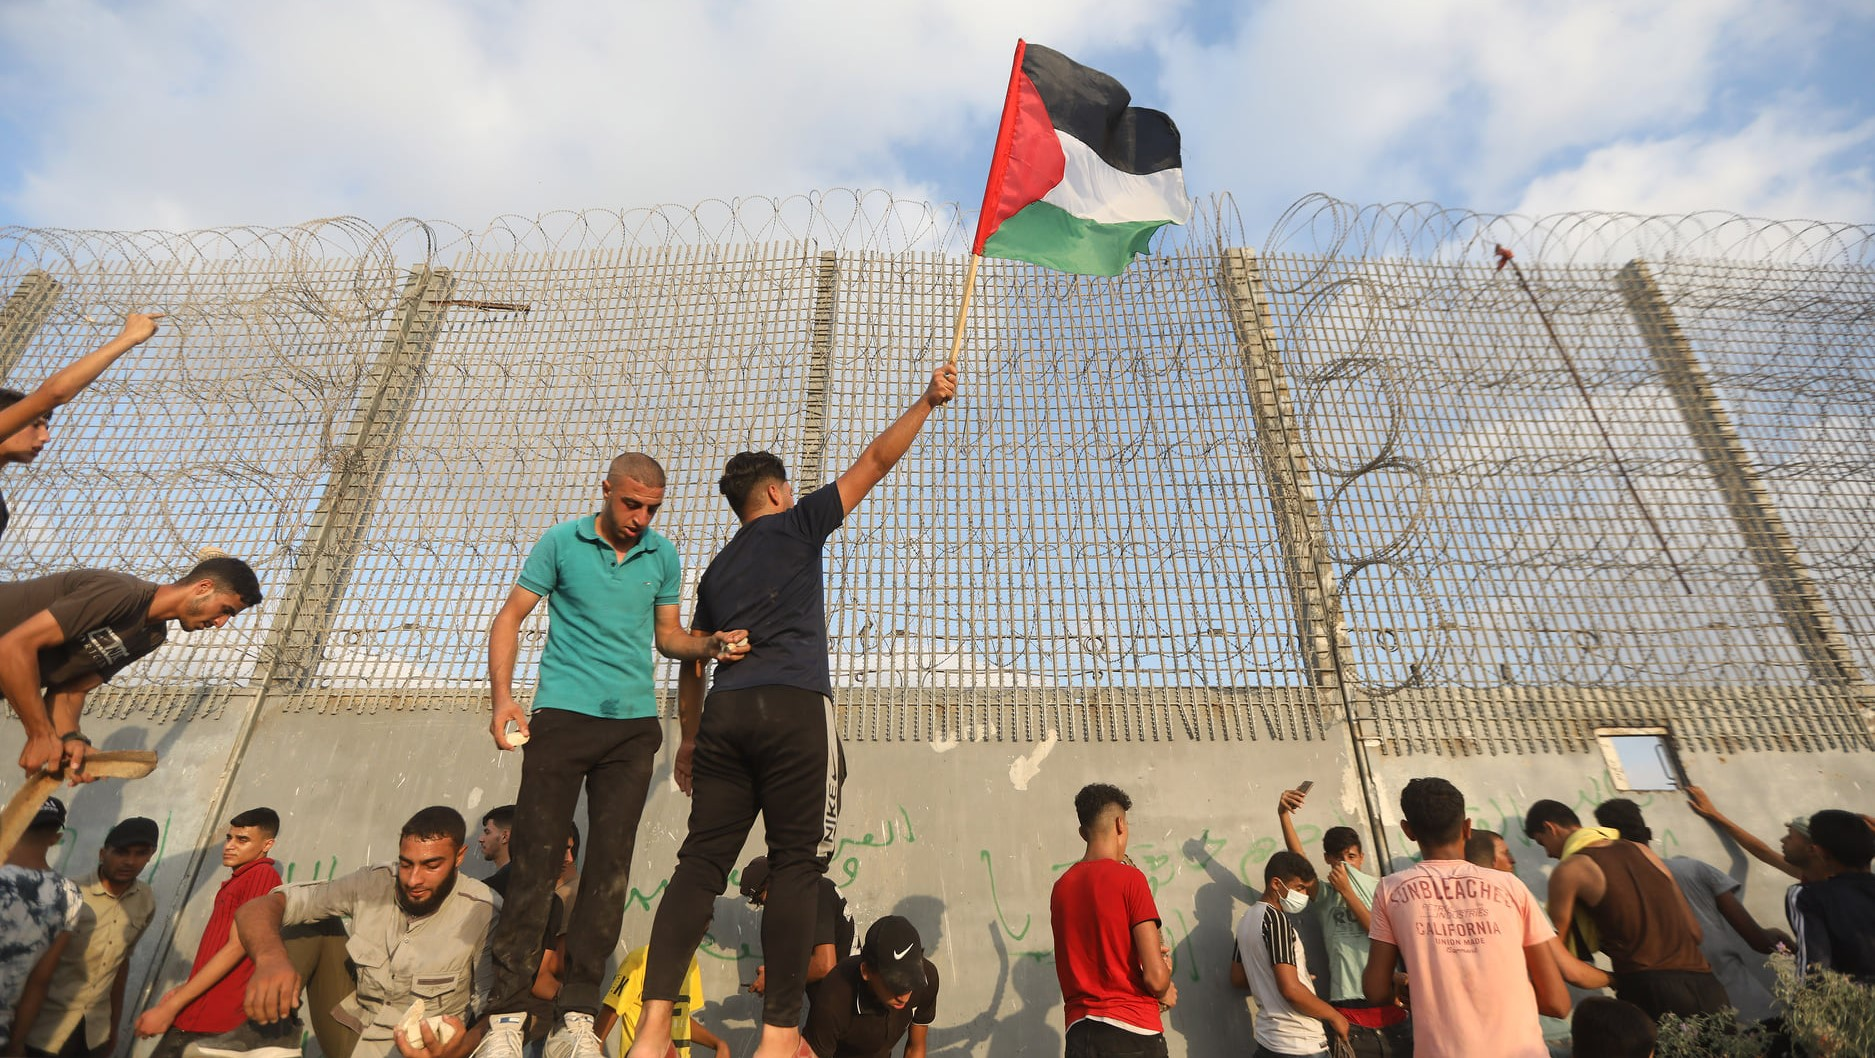 Palestinians along the border fence enclosing the Gaza Strip protest against the Israeli blockade that has been in place for over 14 years (Saturday August 21). Israeli soldiers responded with live fire, injuring 41 protesters, including critically injuring a 13-year-old. An Israeli Border Police sniper was also critically injured while positioned on the other side of the fence.